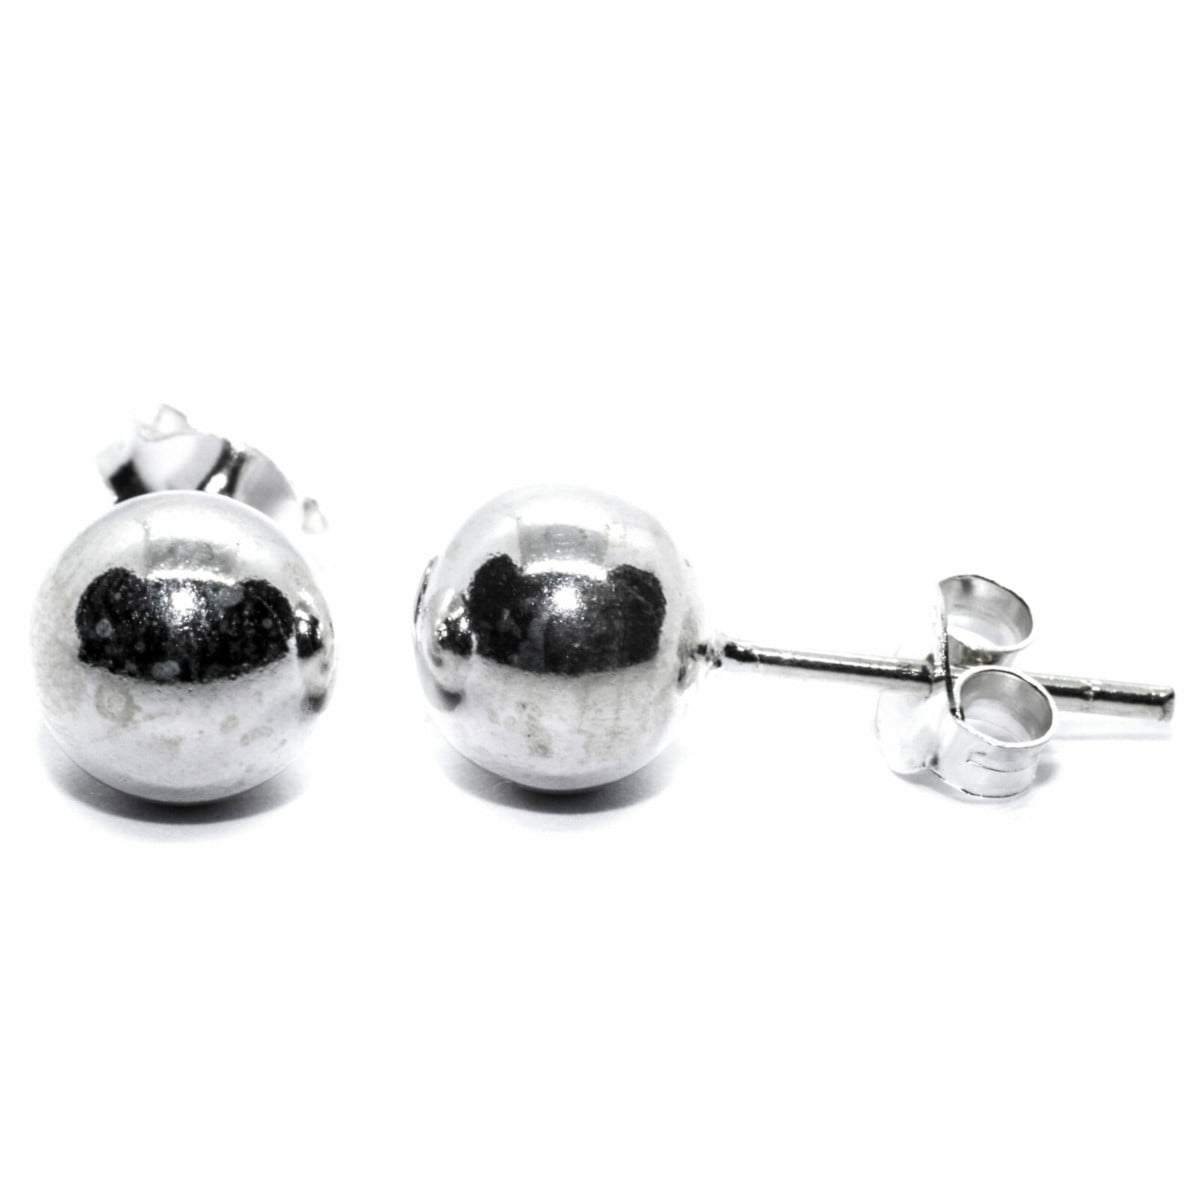 7 mm ball stud earrings in sterling silver